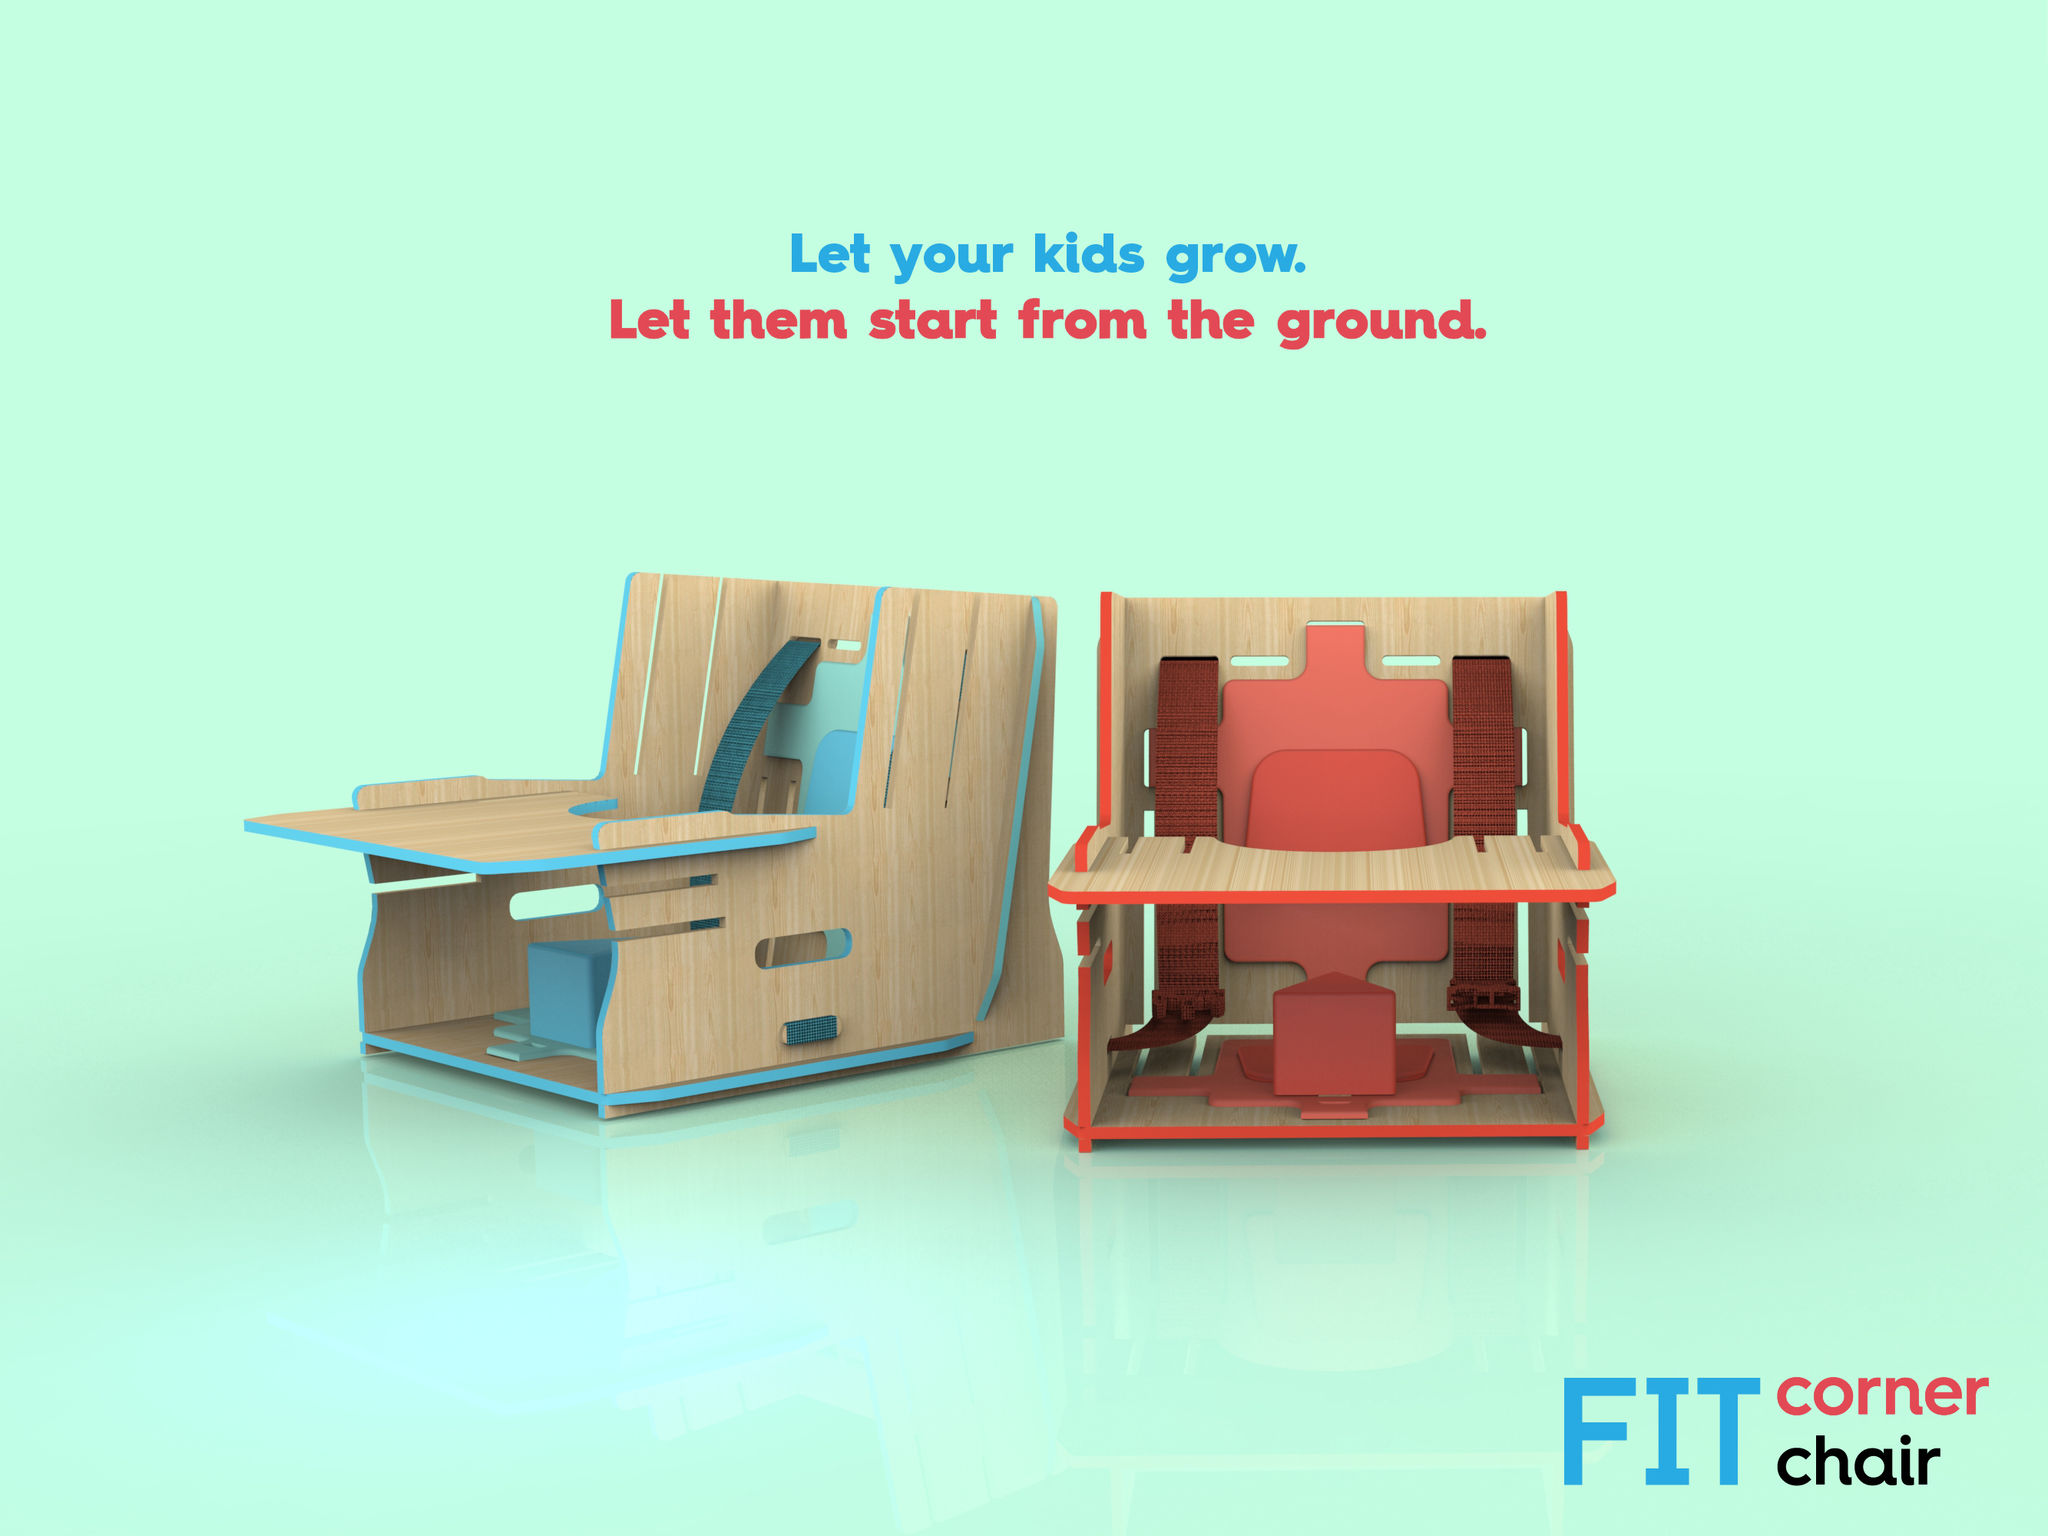 Enjoyable Fit Corner Chair If World Design Guide Andrewgaddart Wooden Chair Designs For Living Room Andrewgaddartcom